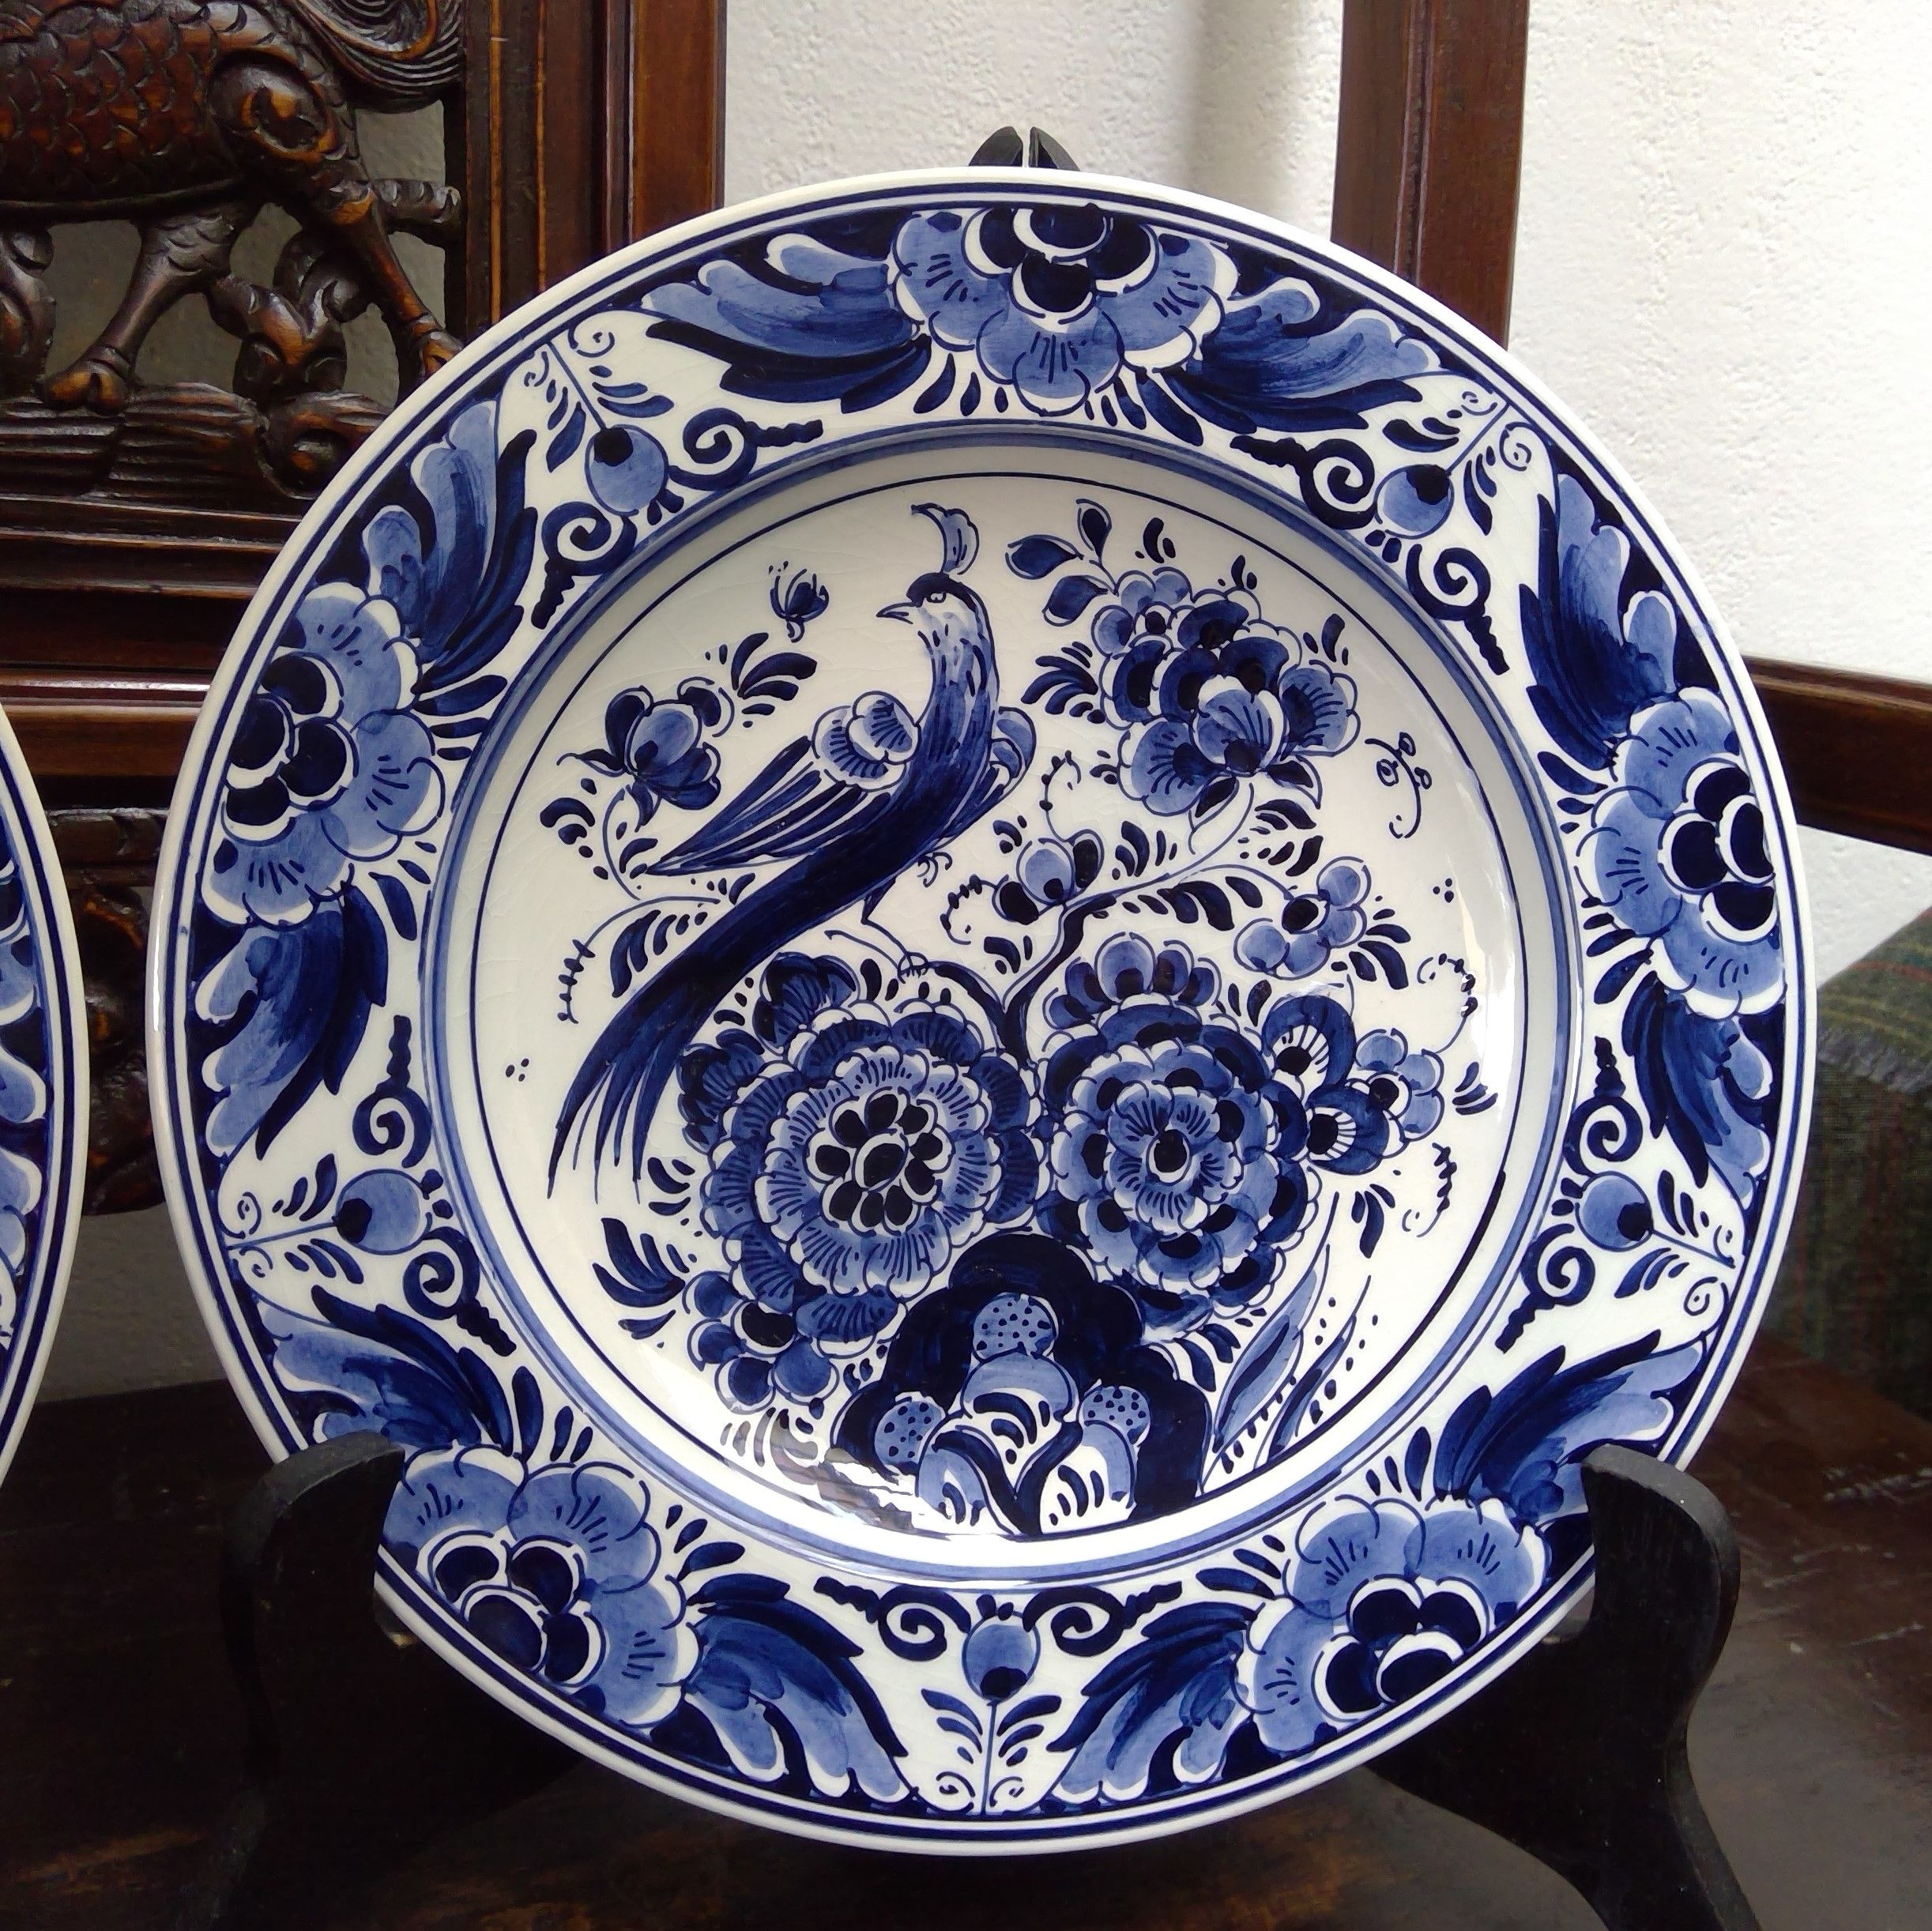 2 Vintage Delft Blue Wall Plates By Velsen Vls Holland Hand Etsy Pottery Art Velsen Plates On Wall